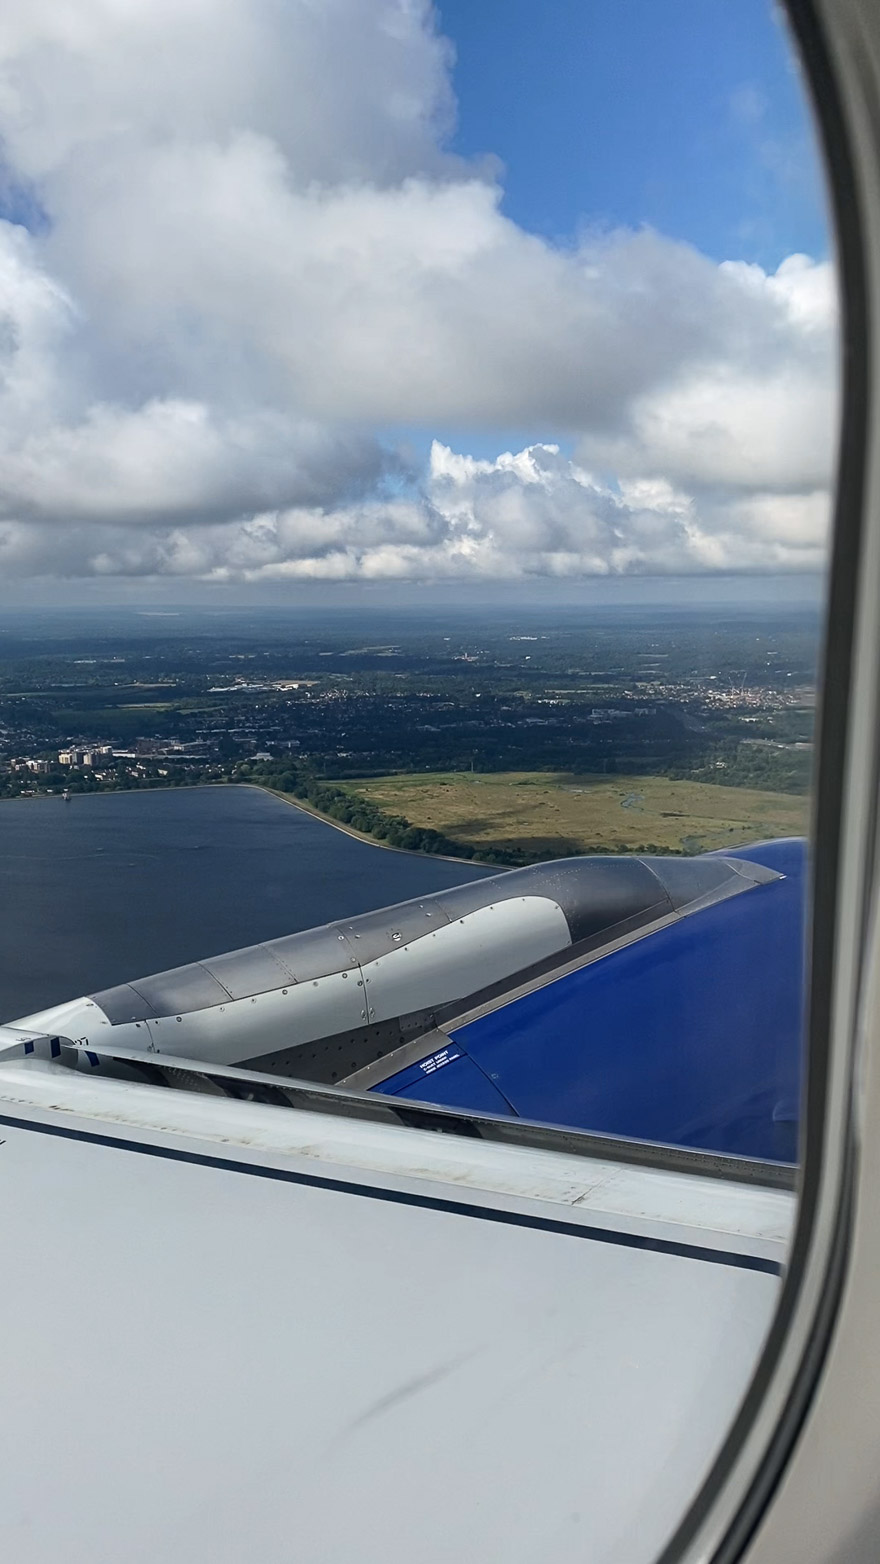 covid Club Europe A321 4 - REVIEW - British Airways : Club Europe Business Class - A319 - London (LHR) to Rome (FCO) - [COVID-era]